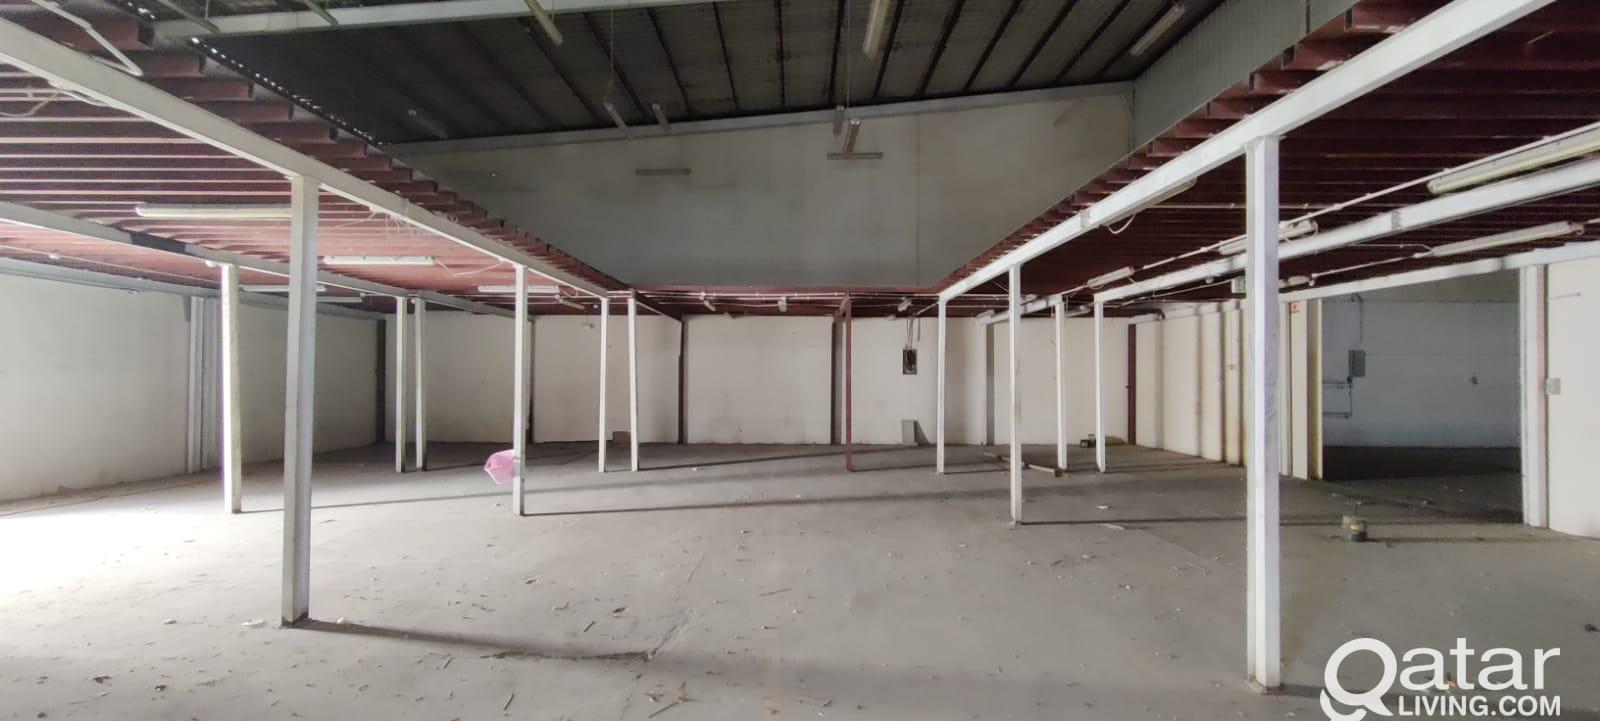 400 Store For Rent